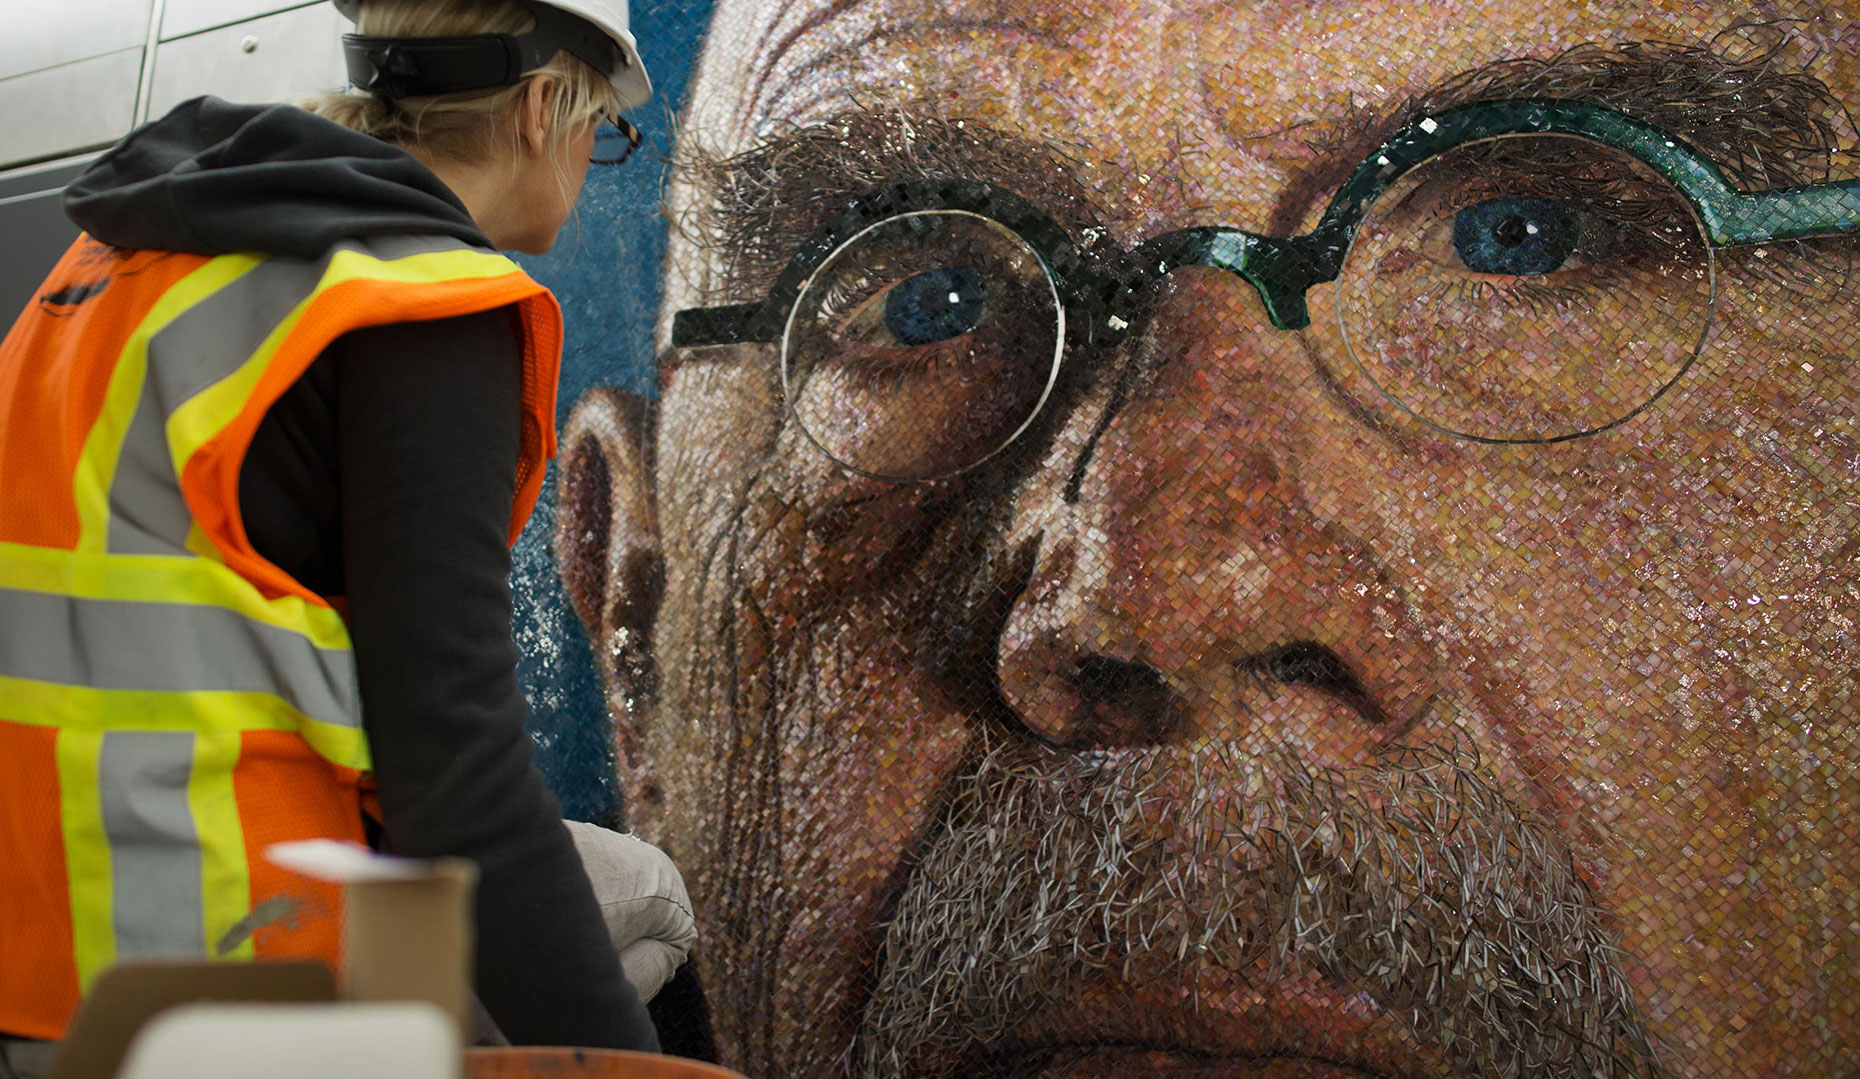 Artist: Chuck Close Photographer: Osheen Harruthoonyan